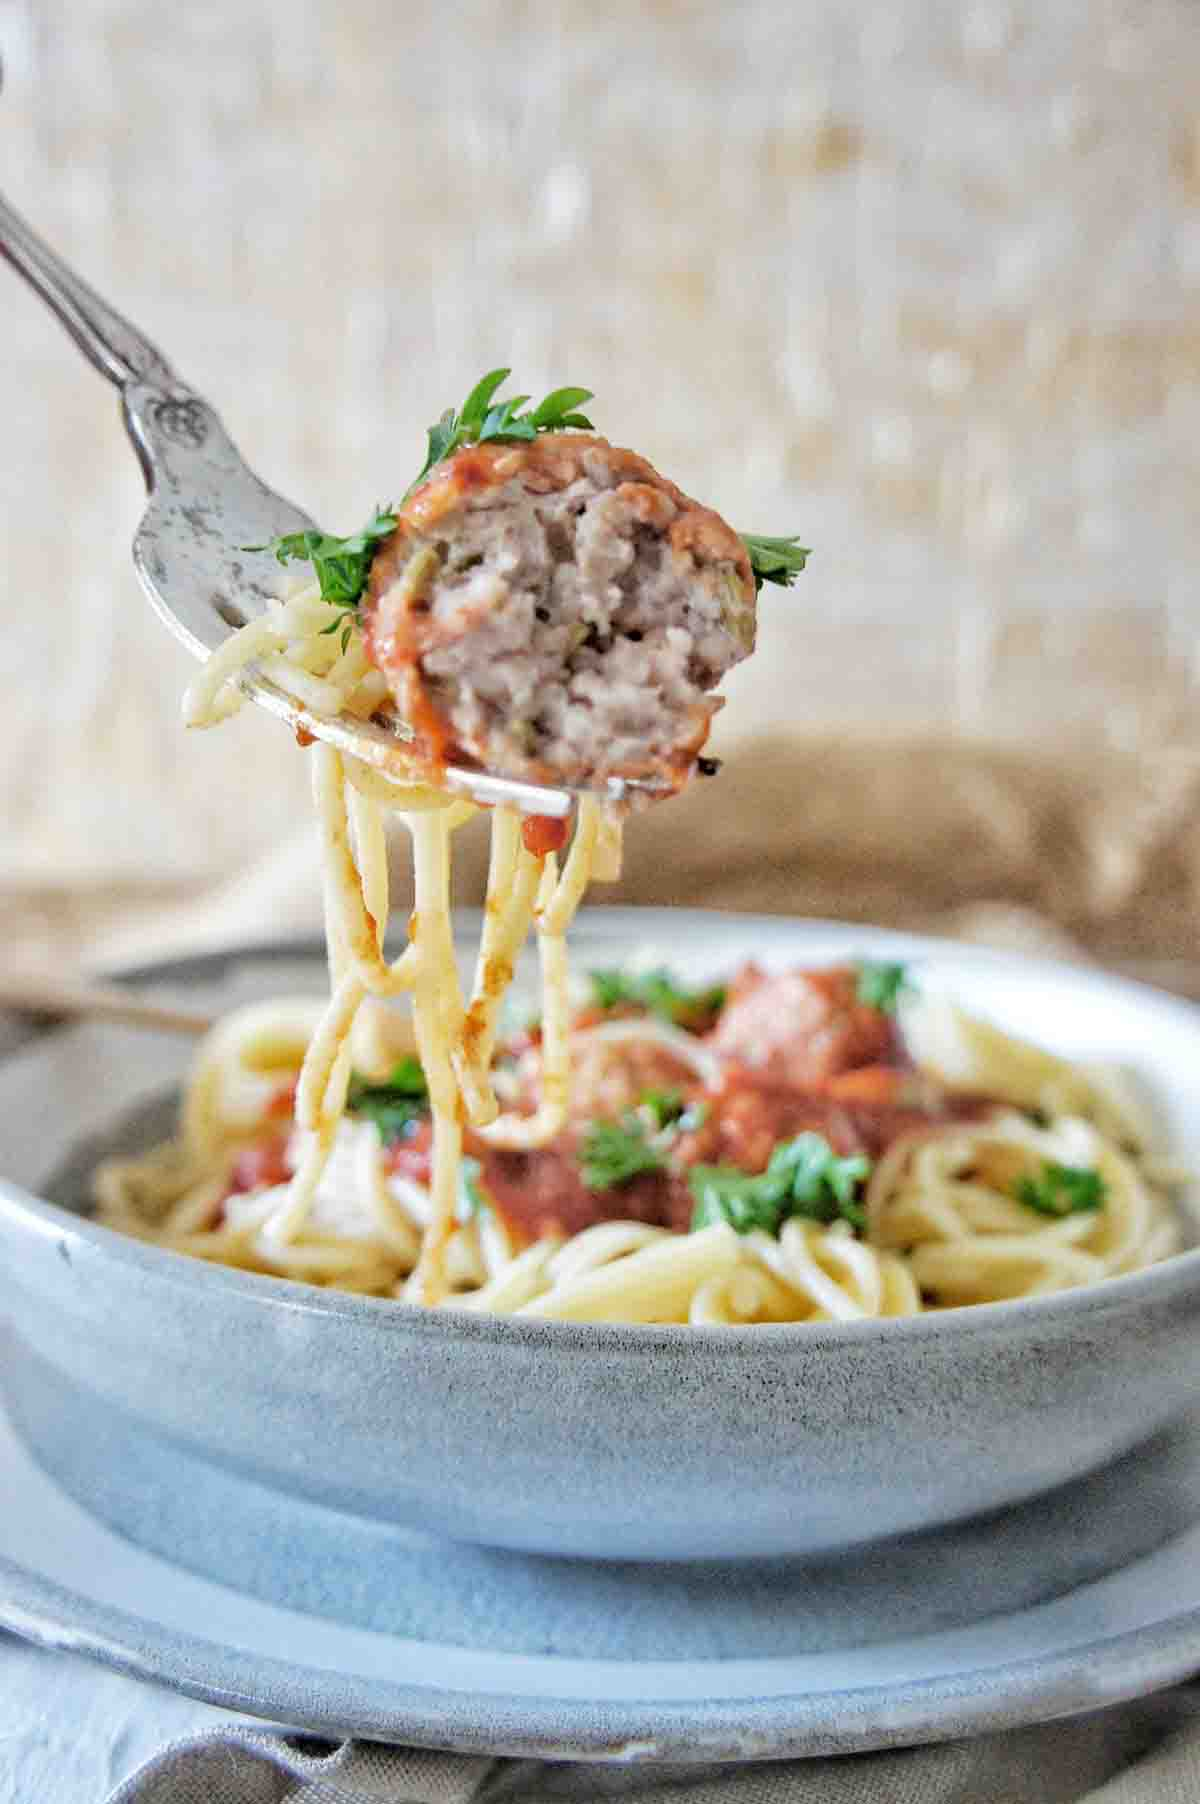 Half eaten meatball on a fork with spaghetti above a bowl of meatball spaghetti